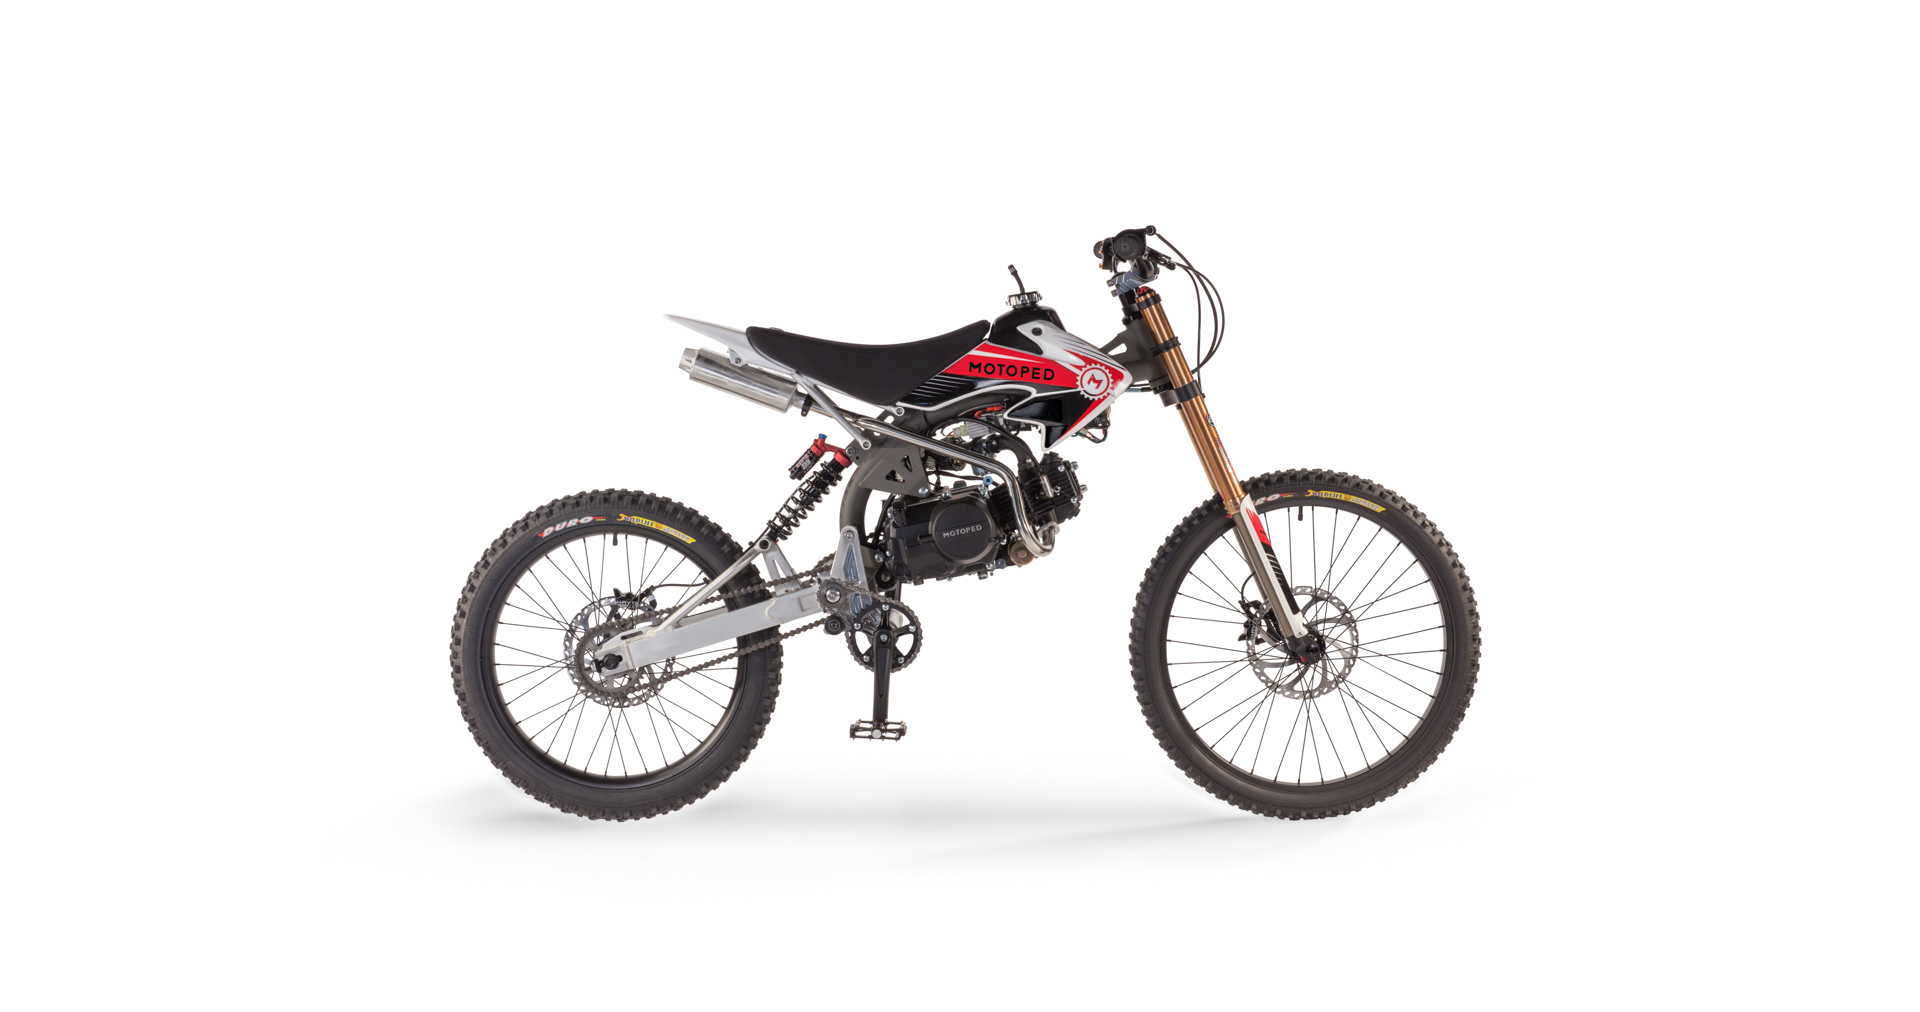 Motoped Survival Bikes